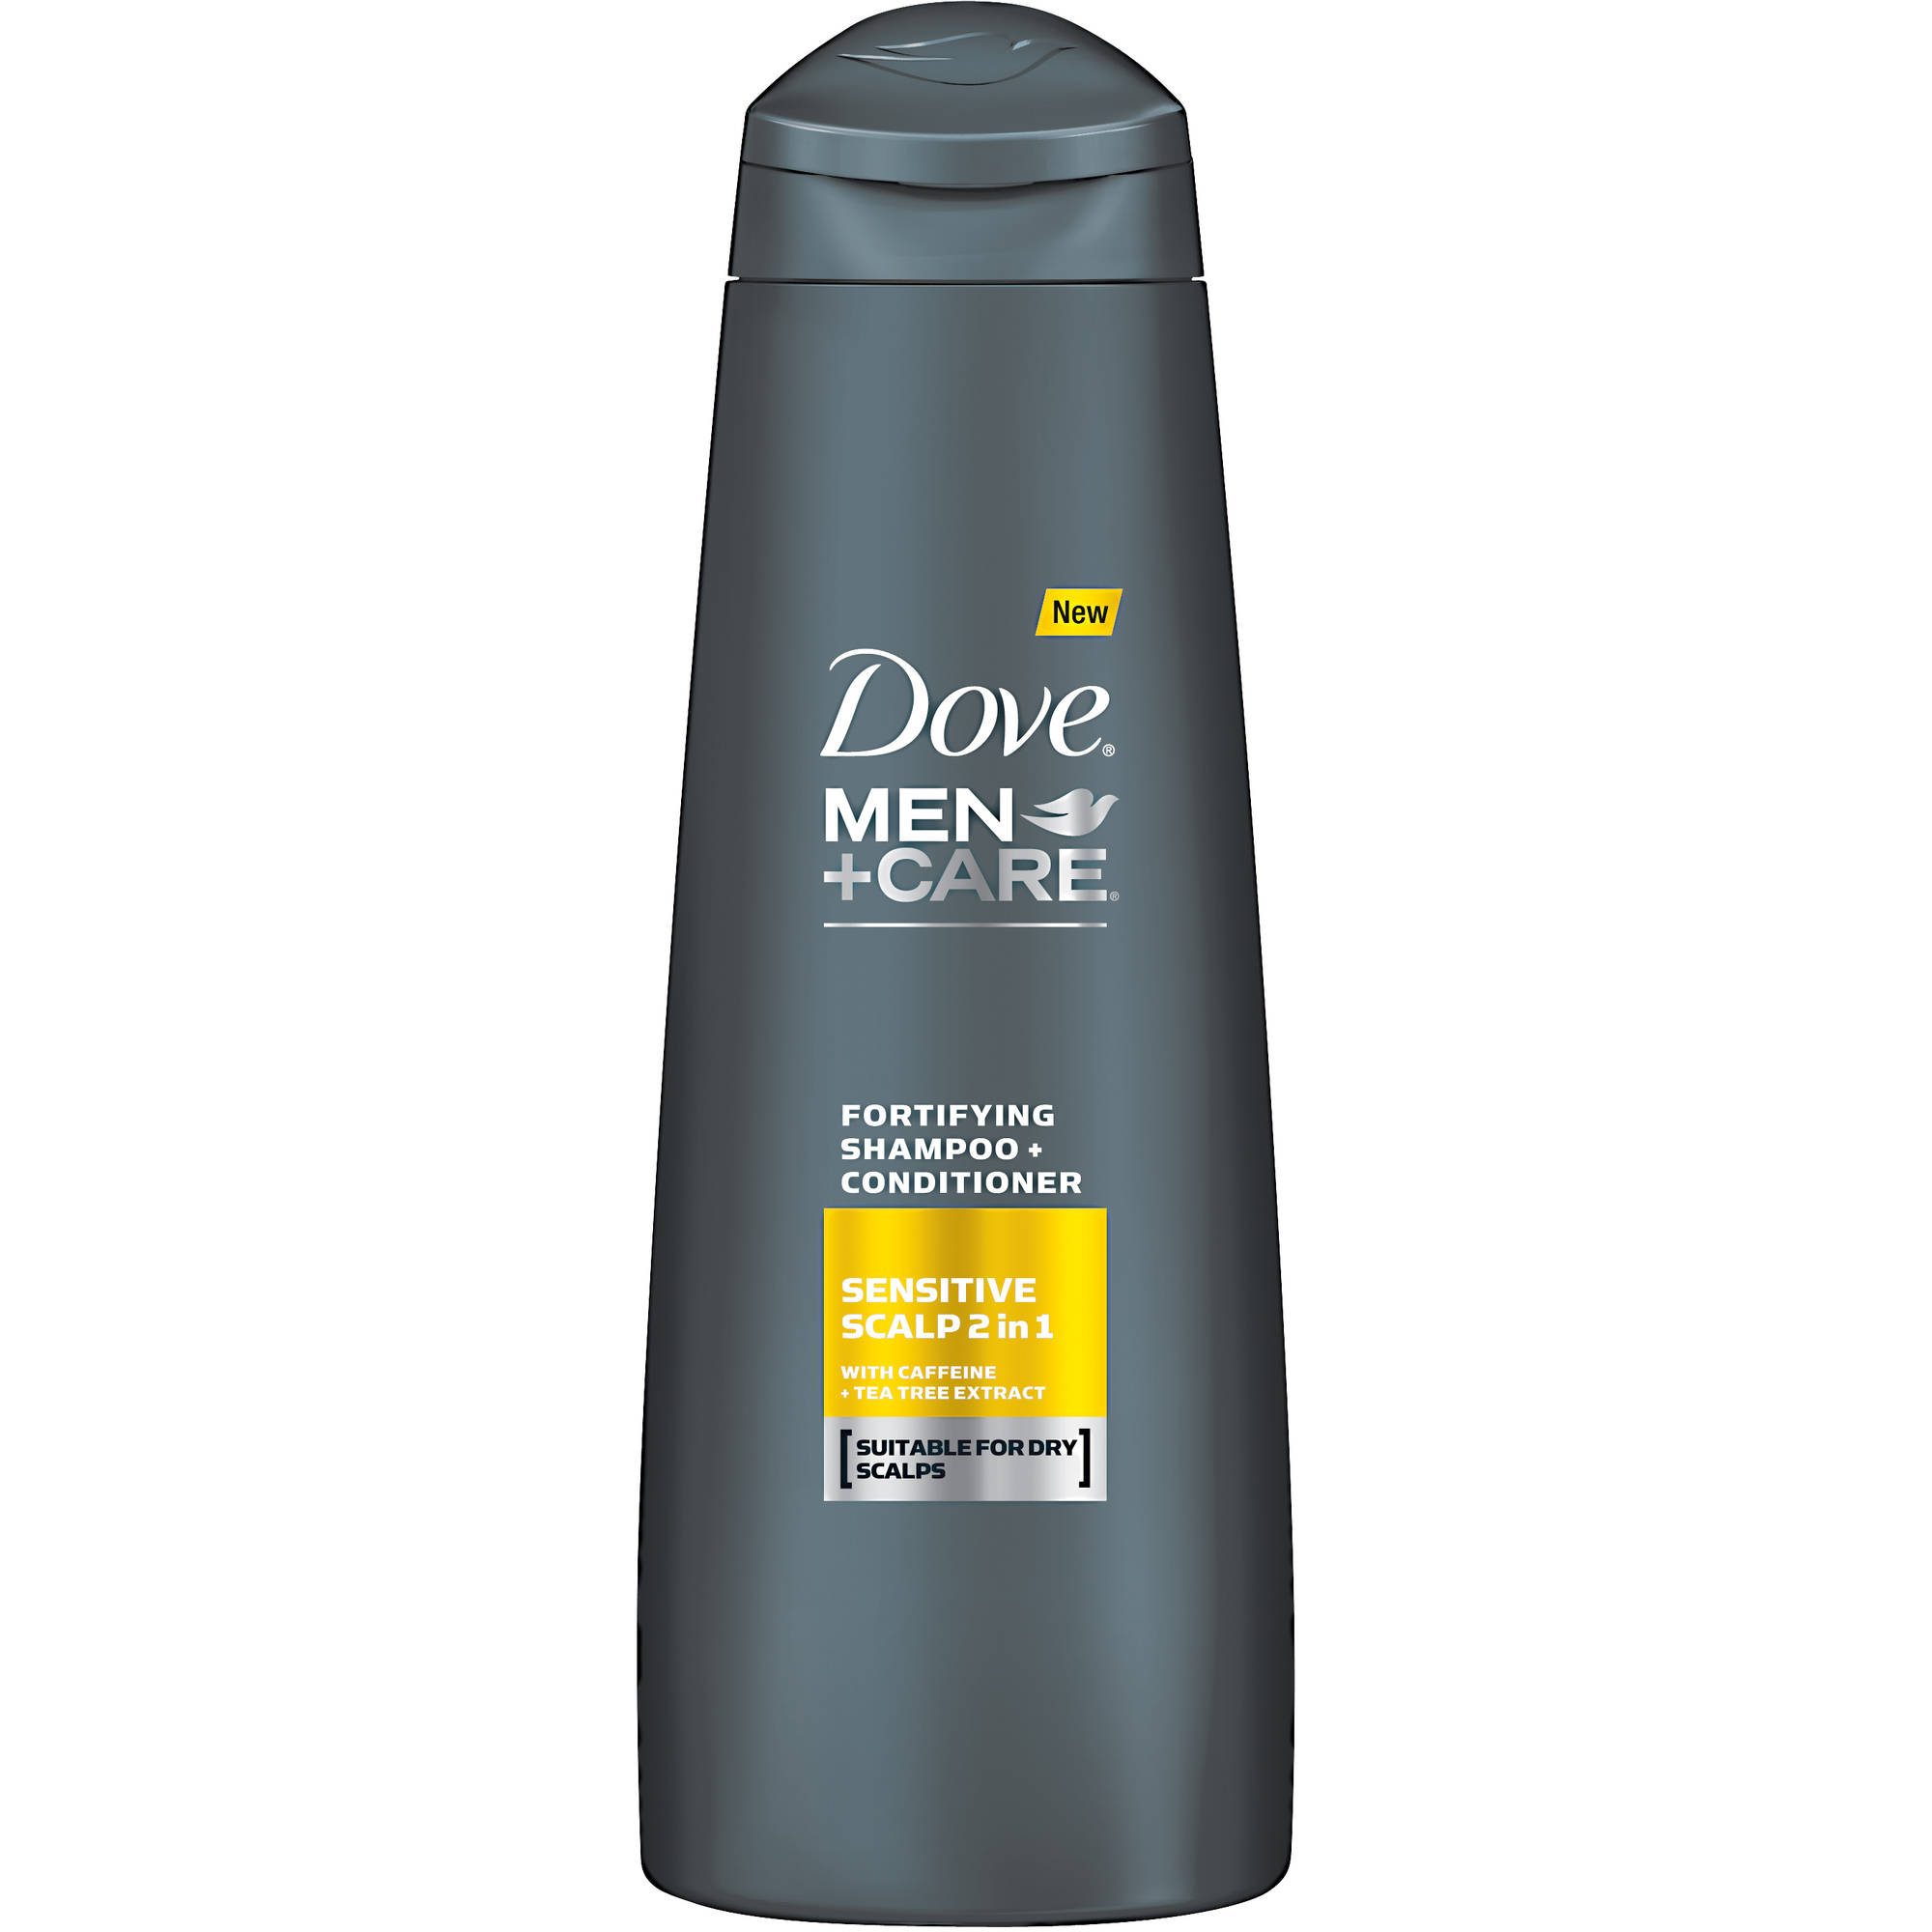 Dove Men+Care Sensitive Scalp with Caffeine Fortifying 2 in 1 Shampoo + Conditioner, 12 oz